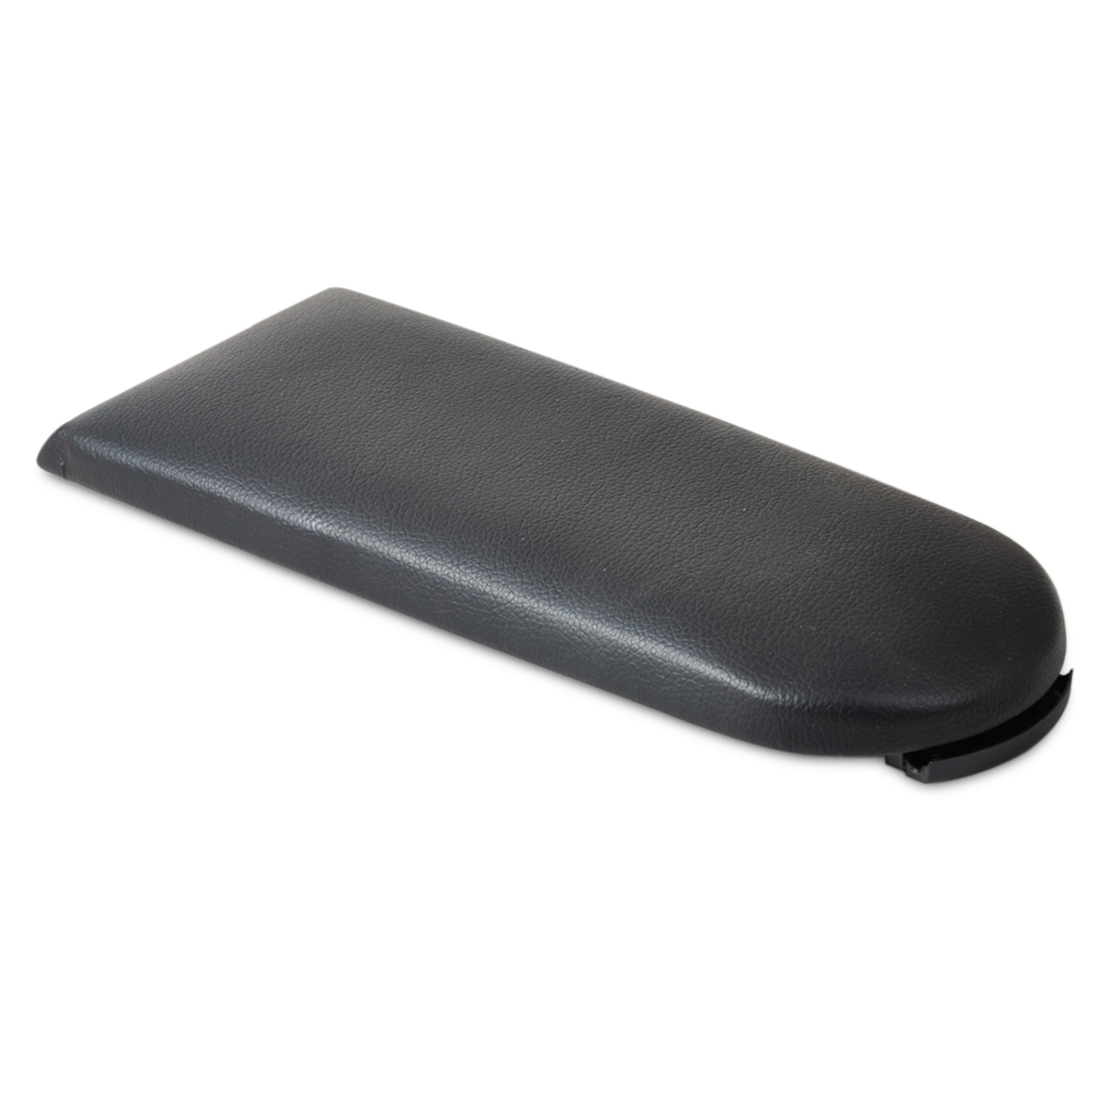 CITALL Car Accessories Black Leather Center Console Armrest Cover Lid For VW Jetta Golf MK4 Beetle Bora Passat B5 Skoda Octavia beler car grey interior dome reading light lamp itd 947 105 fit for vw golf jetta mk4 bora 1999 2004 passat b5 1998 2005